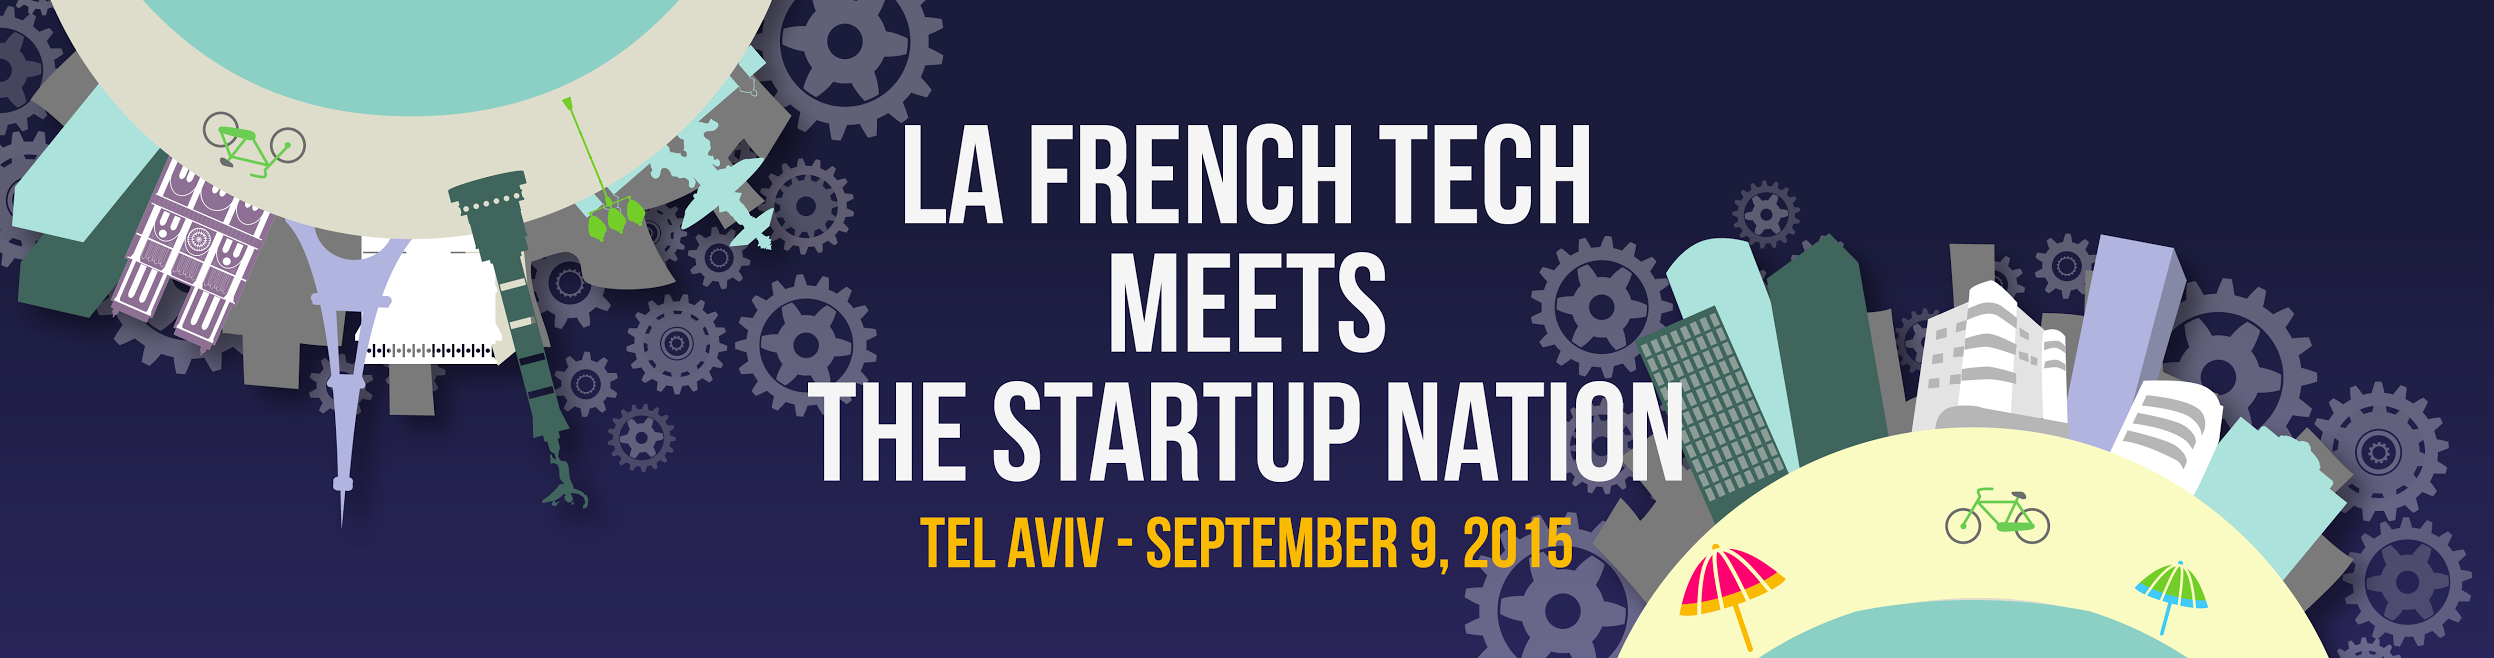 La French Tech meets Startup Nation